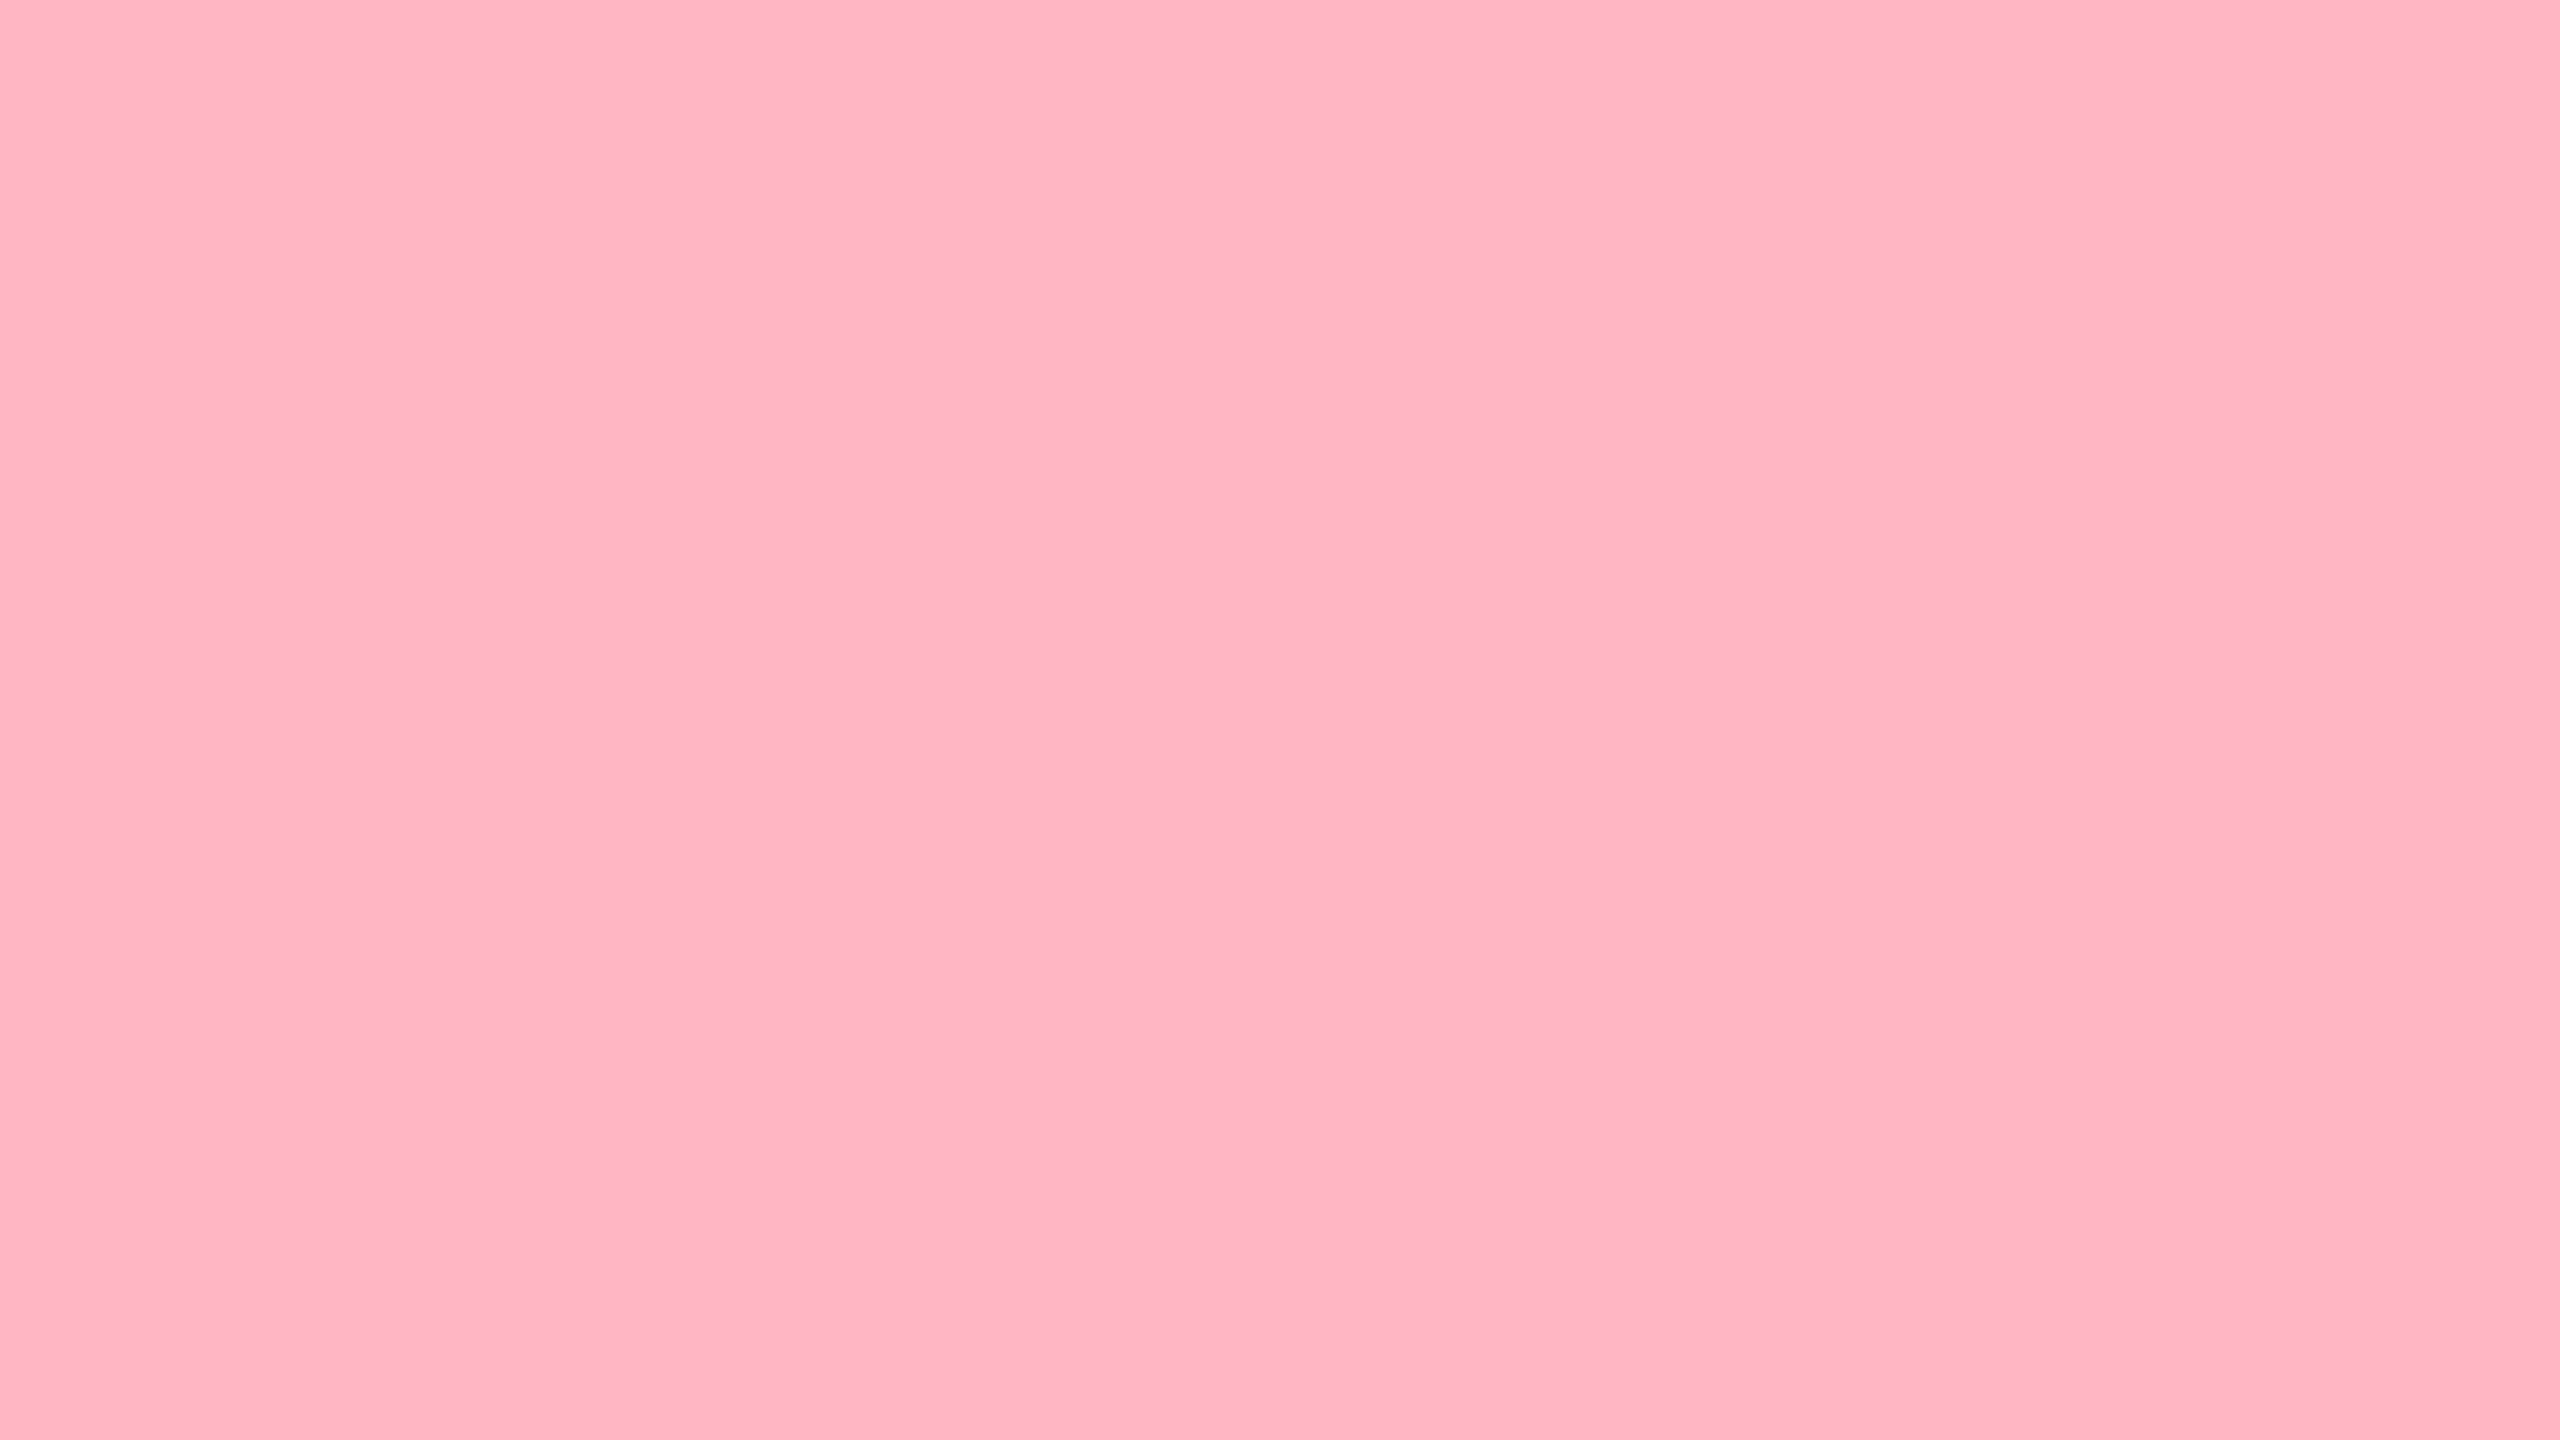 Light Pink Color Wallpaper Images Pictures   Becuo 2560x1440